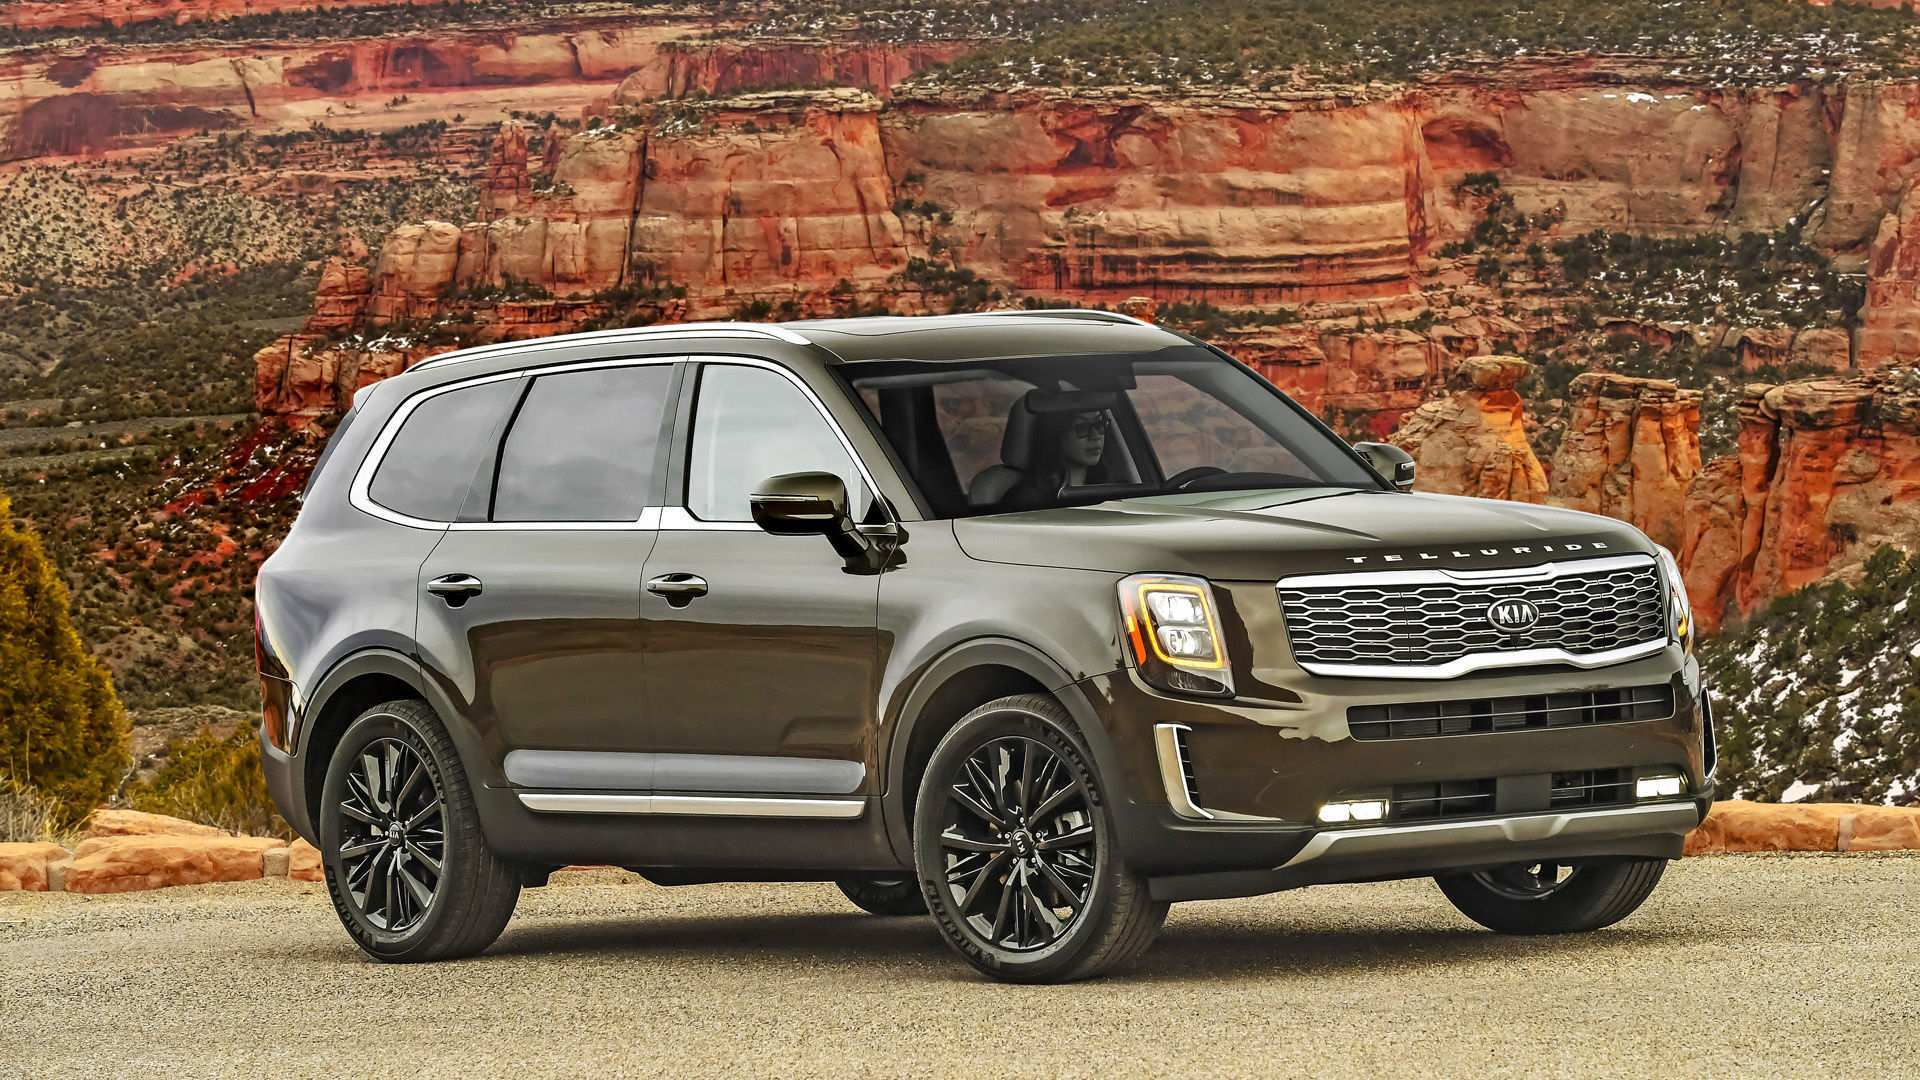 78 All New 2020 Kia Telluride Dimensions Specs with 2020 Kia Telluride Dimensions